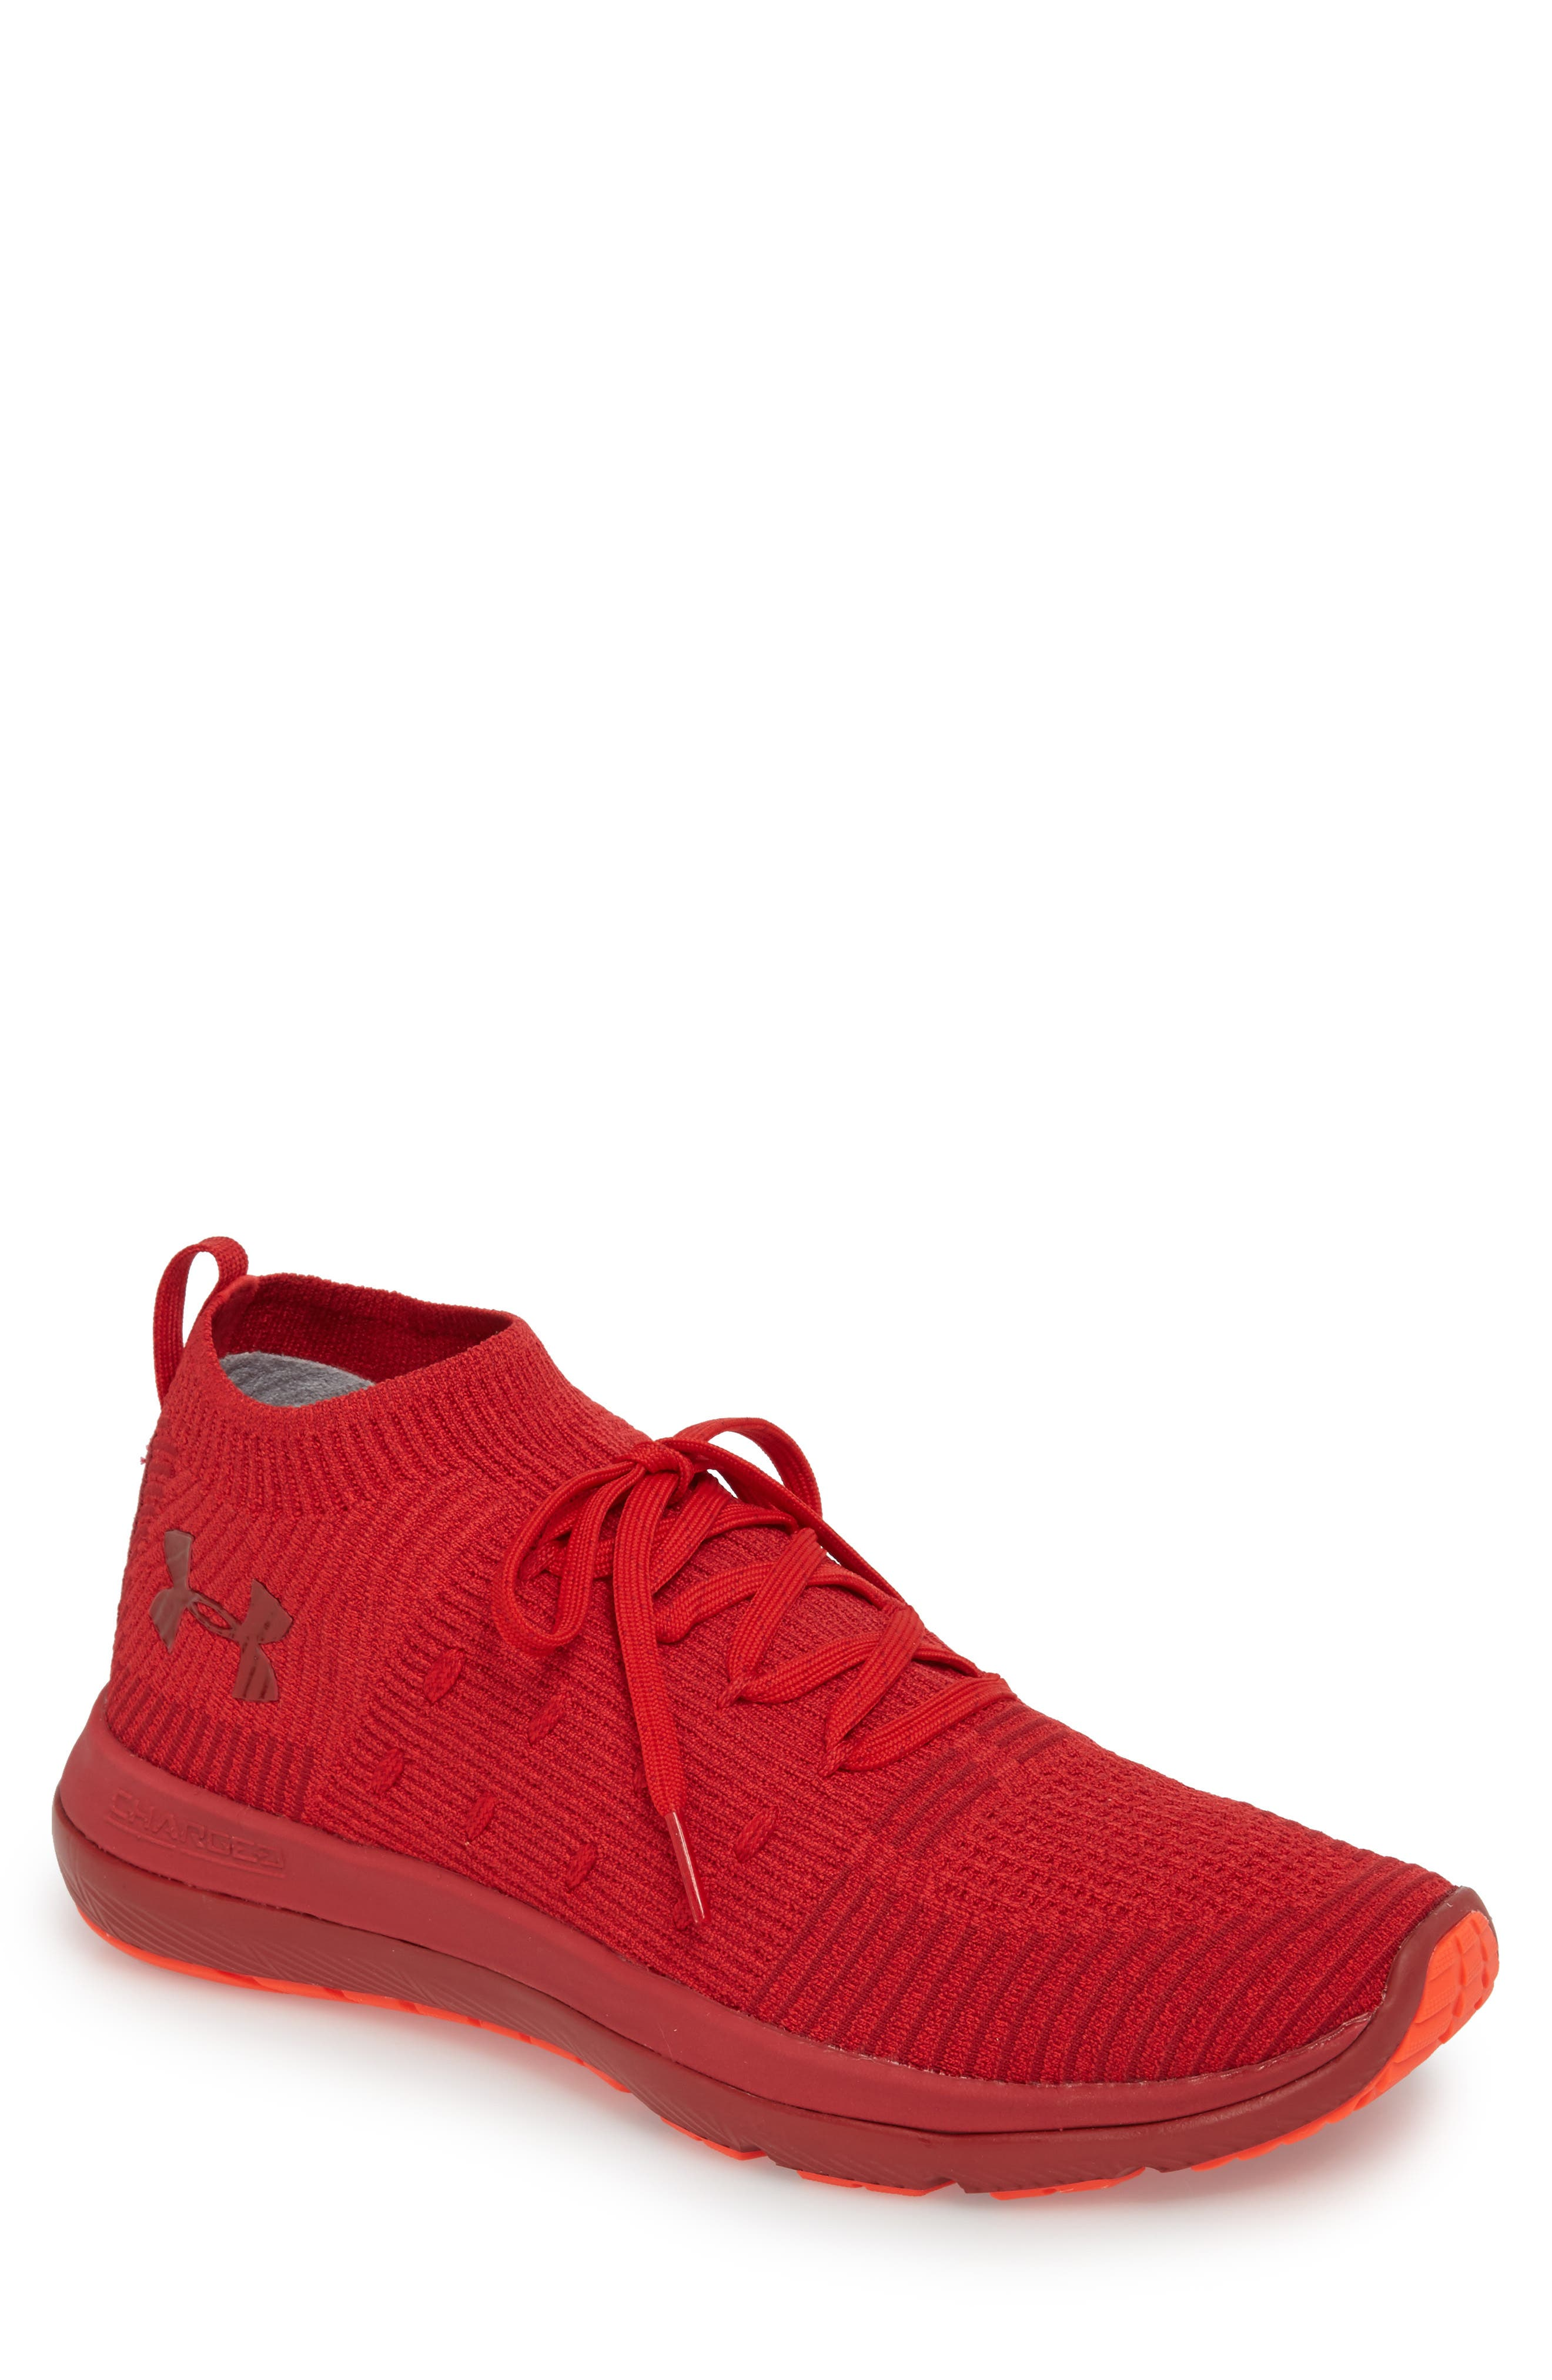 Slingflex Rise Sneaker,                         Main,                         color, Pierce/ Spice Red